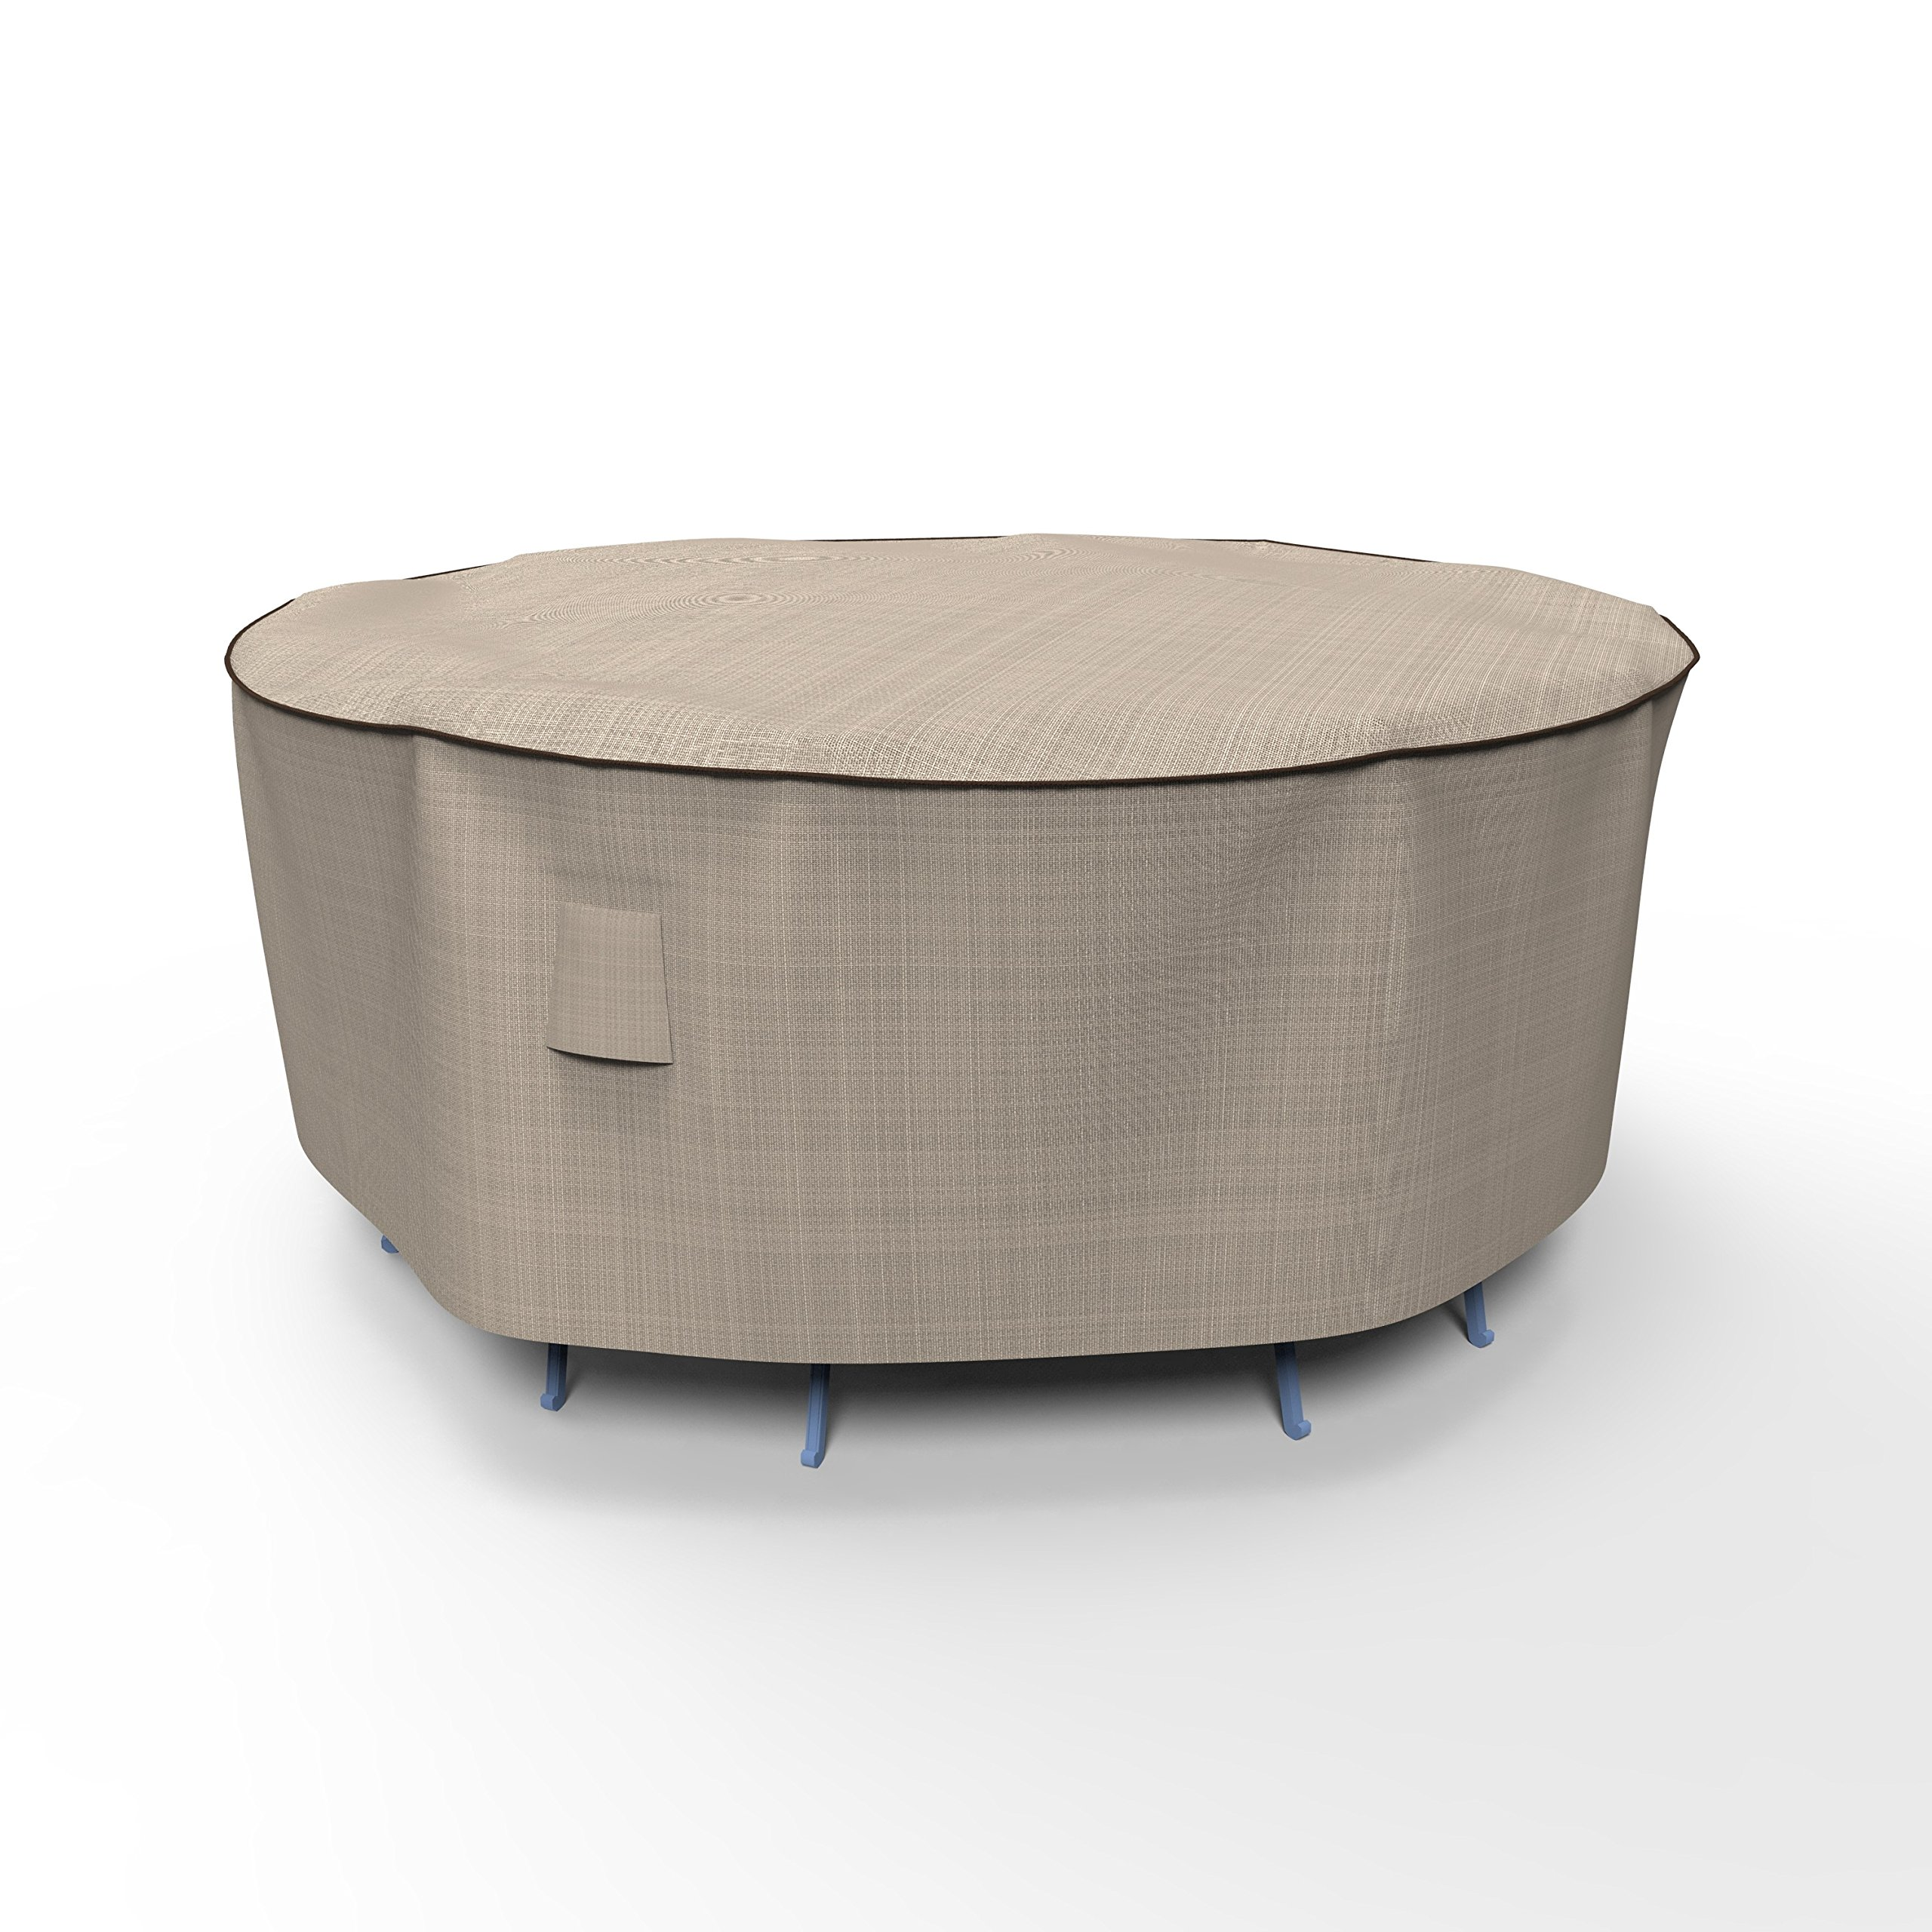 EmpirePatio P5A08PM1 Tan Tweed Small Round Table and Chair Combo Cover